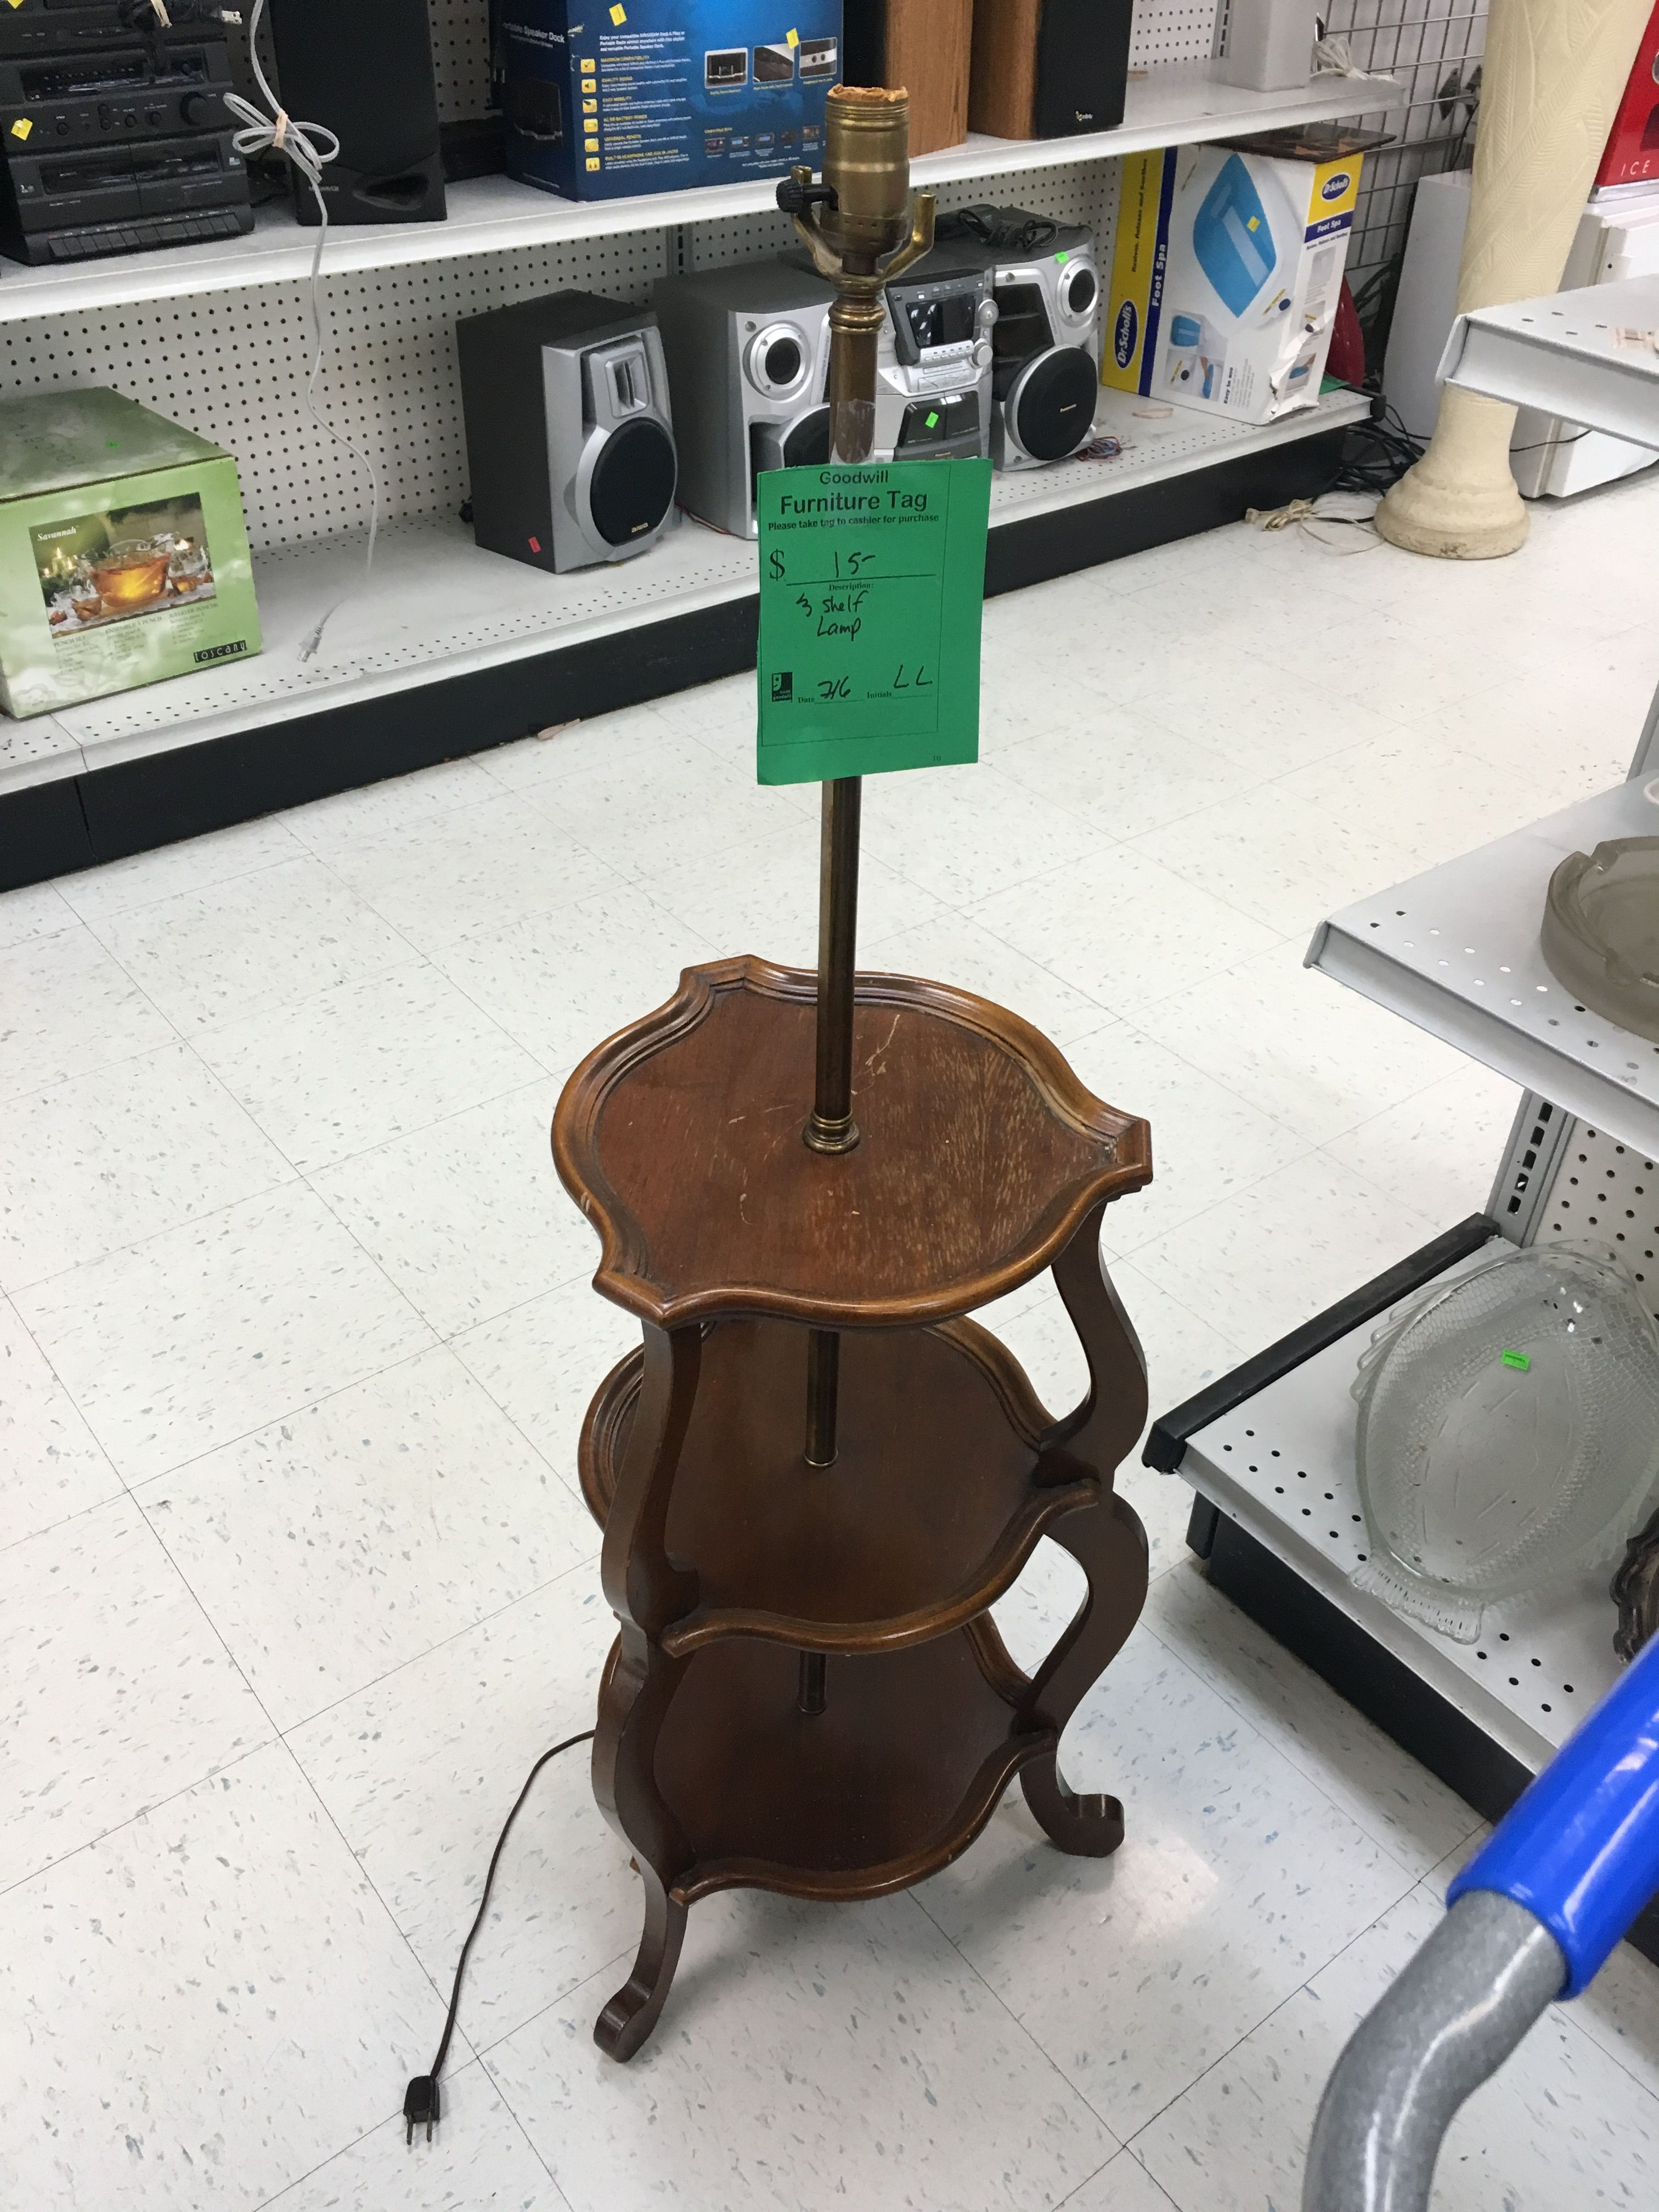 Goodwill- Clayton Rd, MO